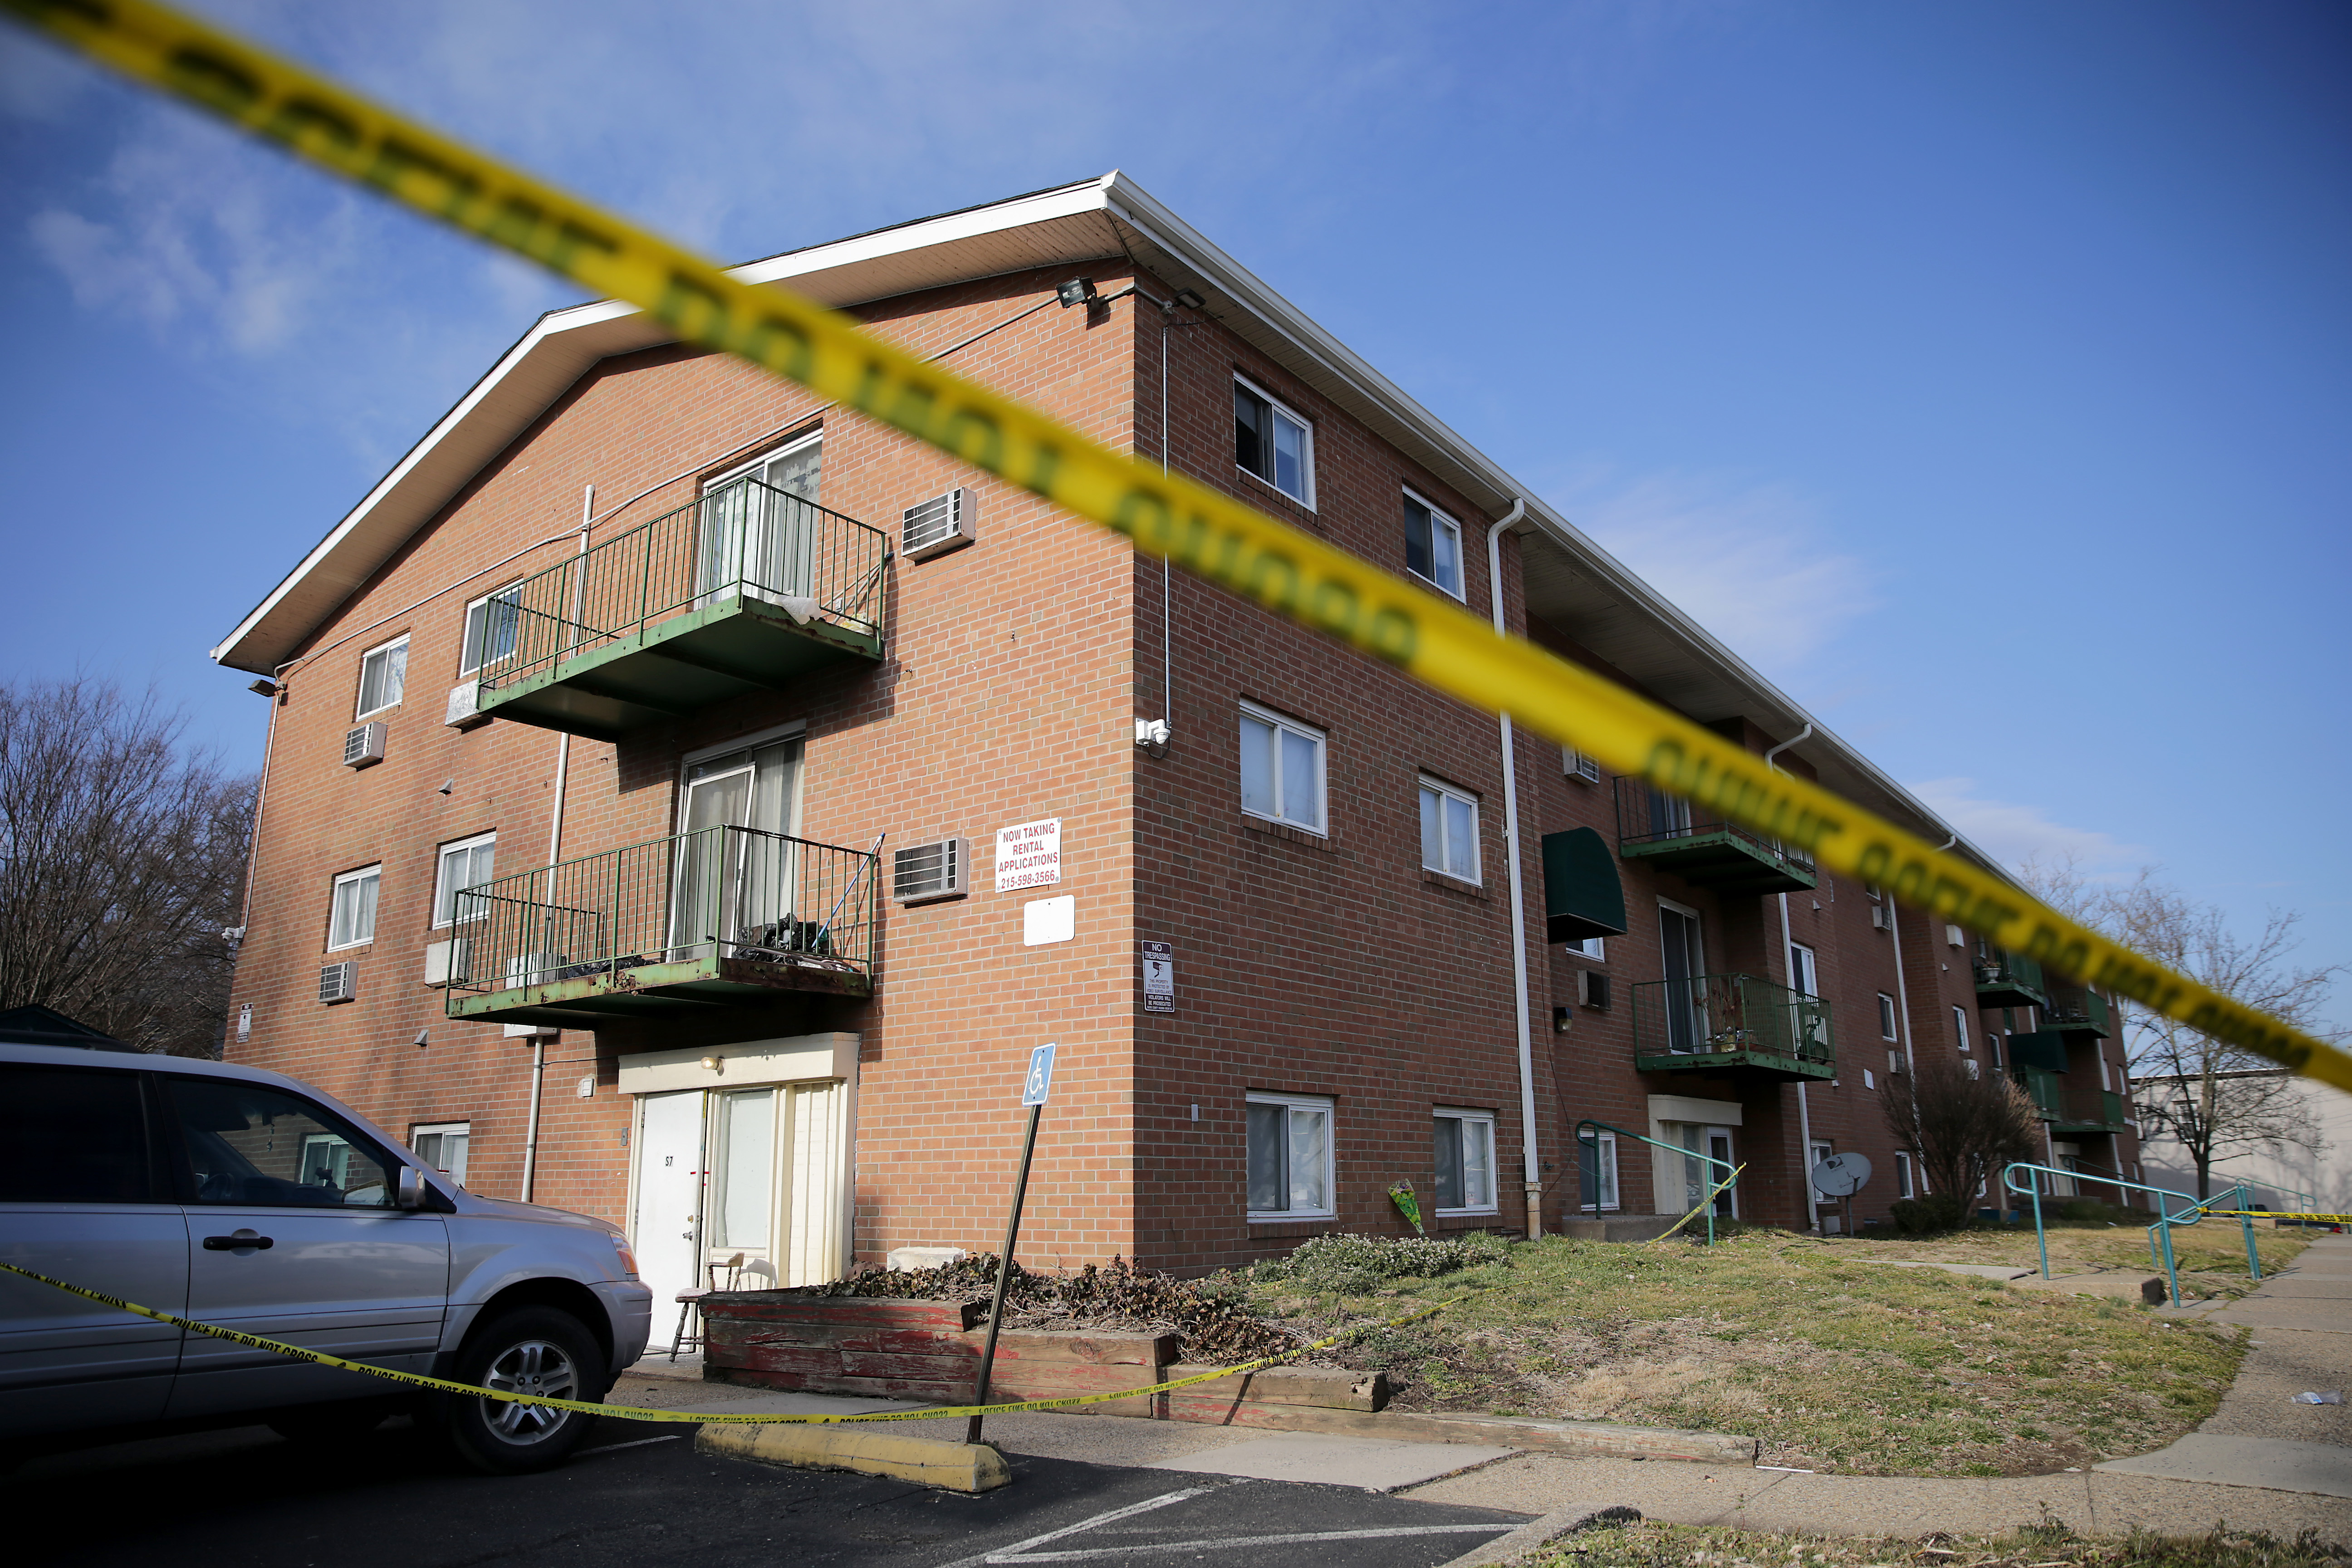 Inside a cramped Bucks County apartment, 5 family members